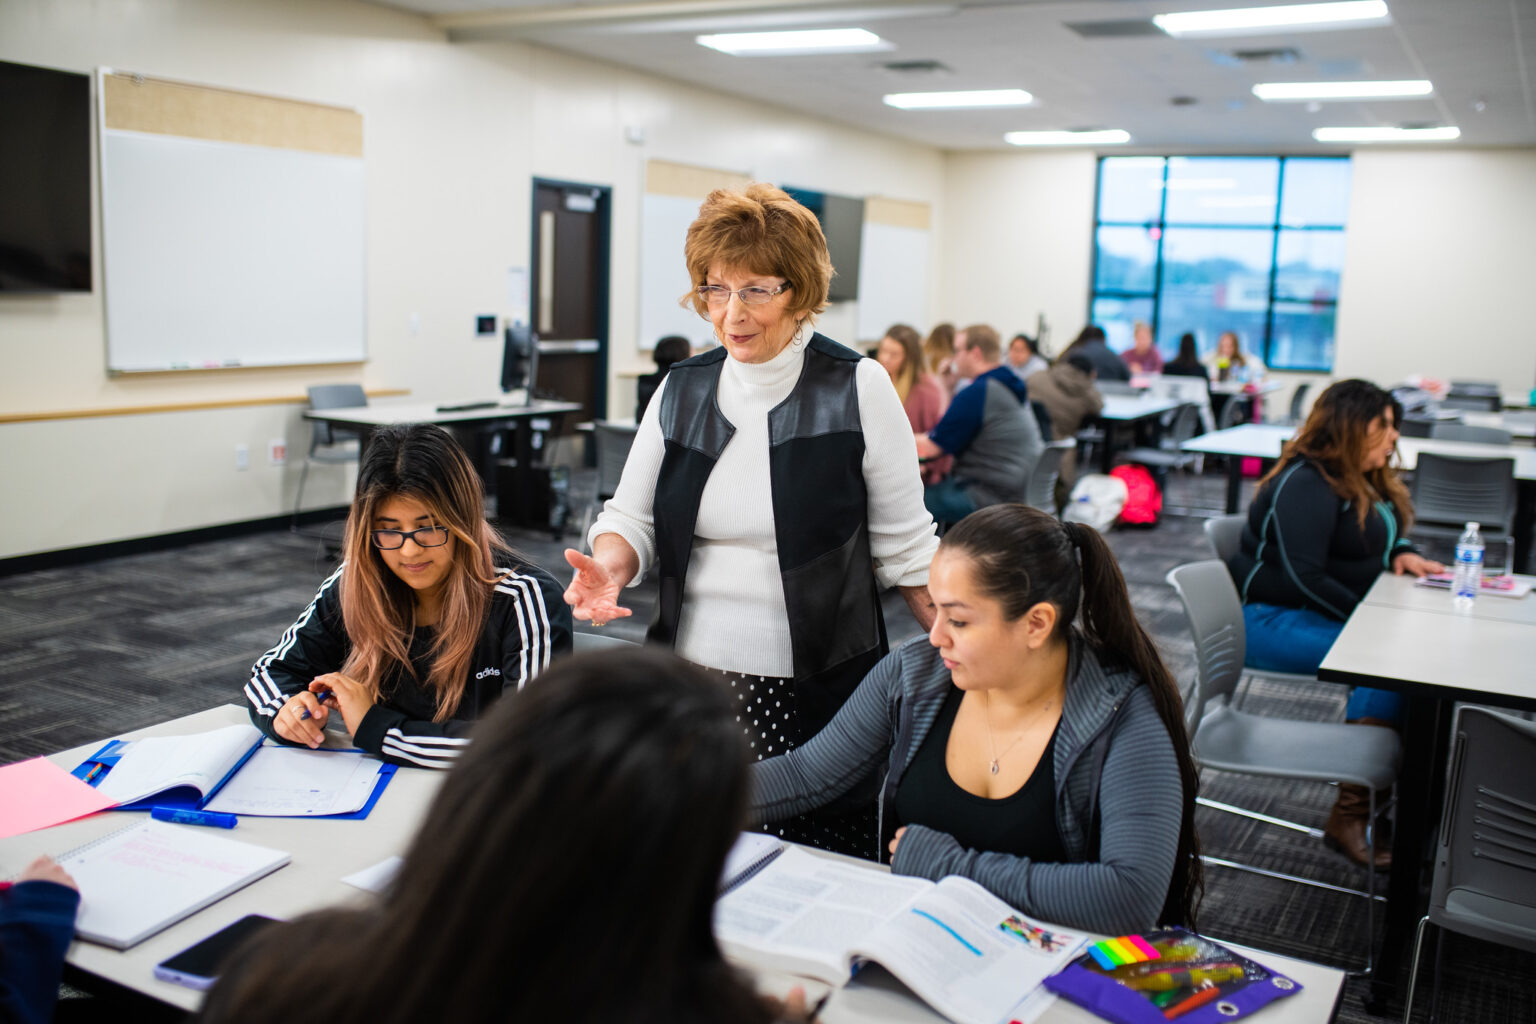 Faculty member working with college students in a large classroom